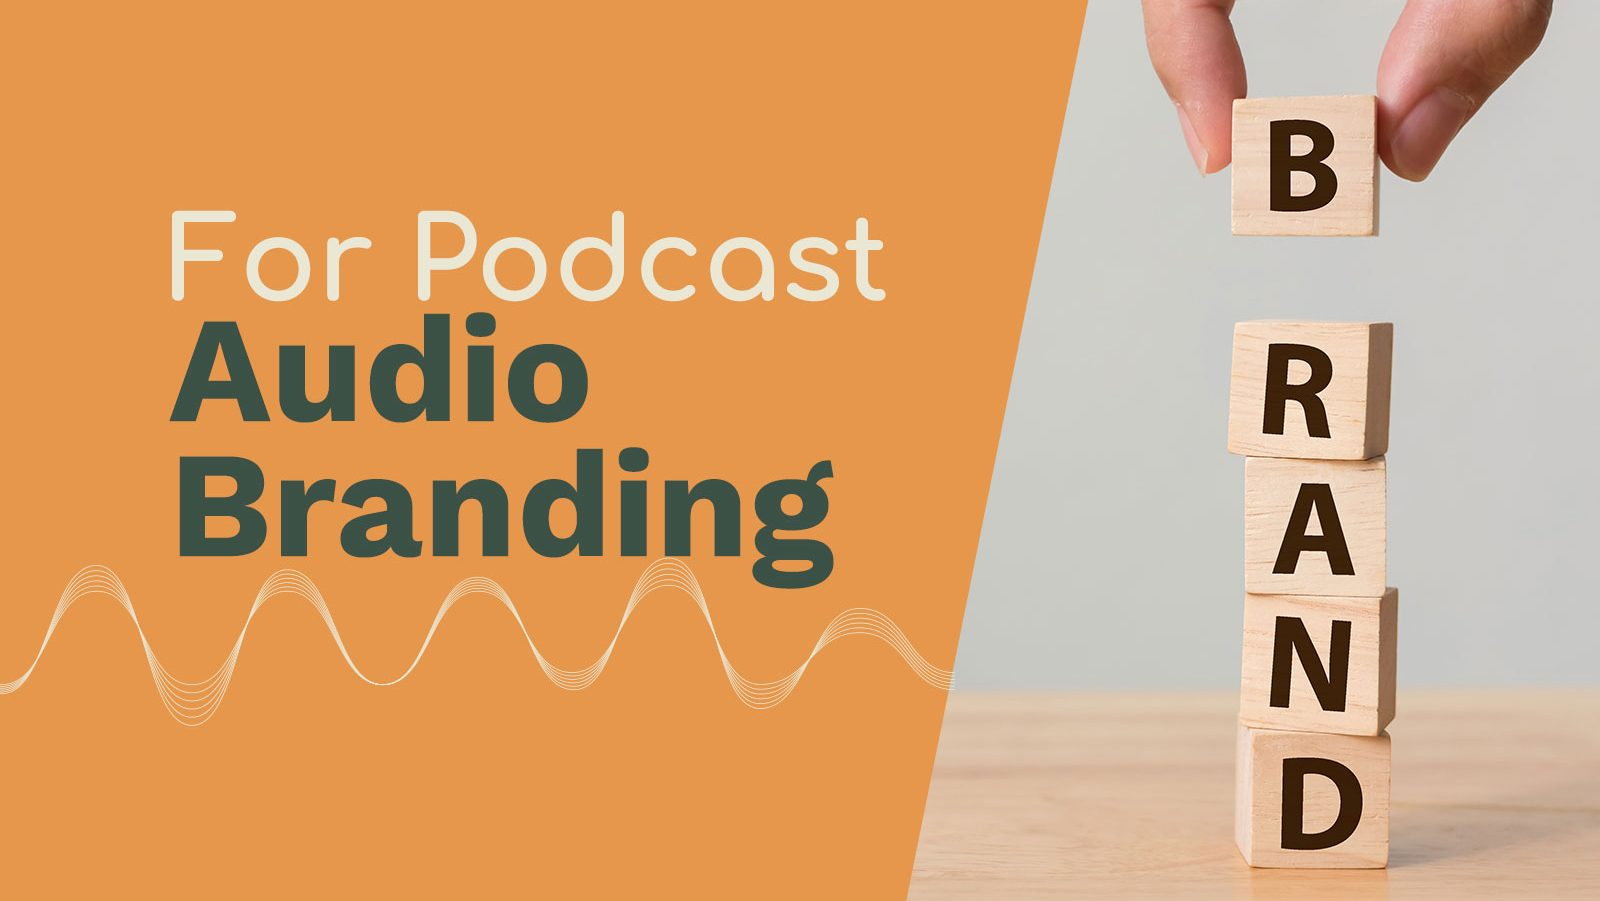 Audio Branding for Podcasters Explained - Everything You Need to Know